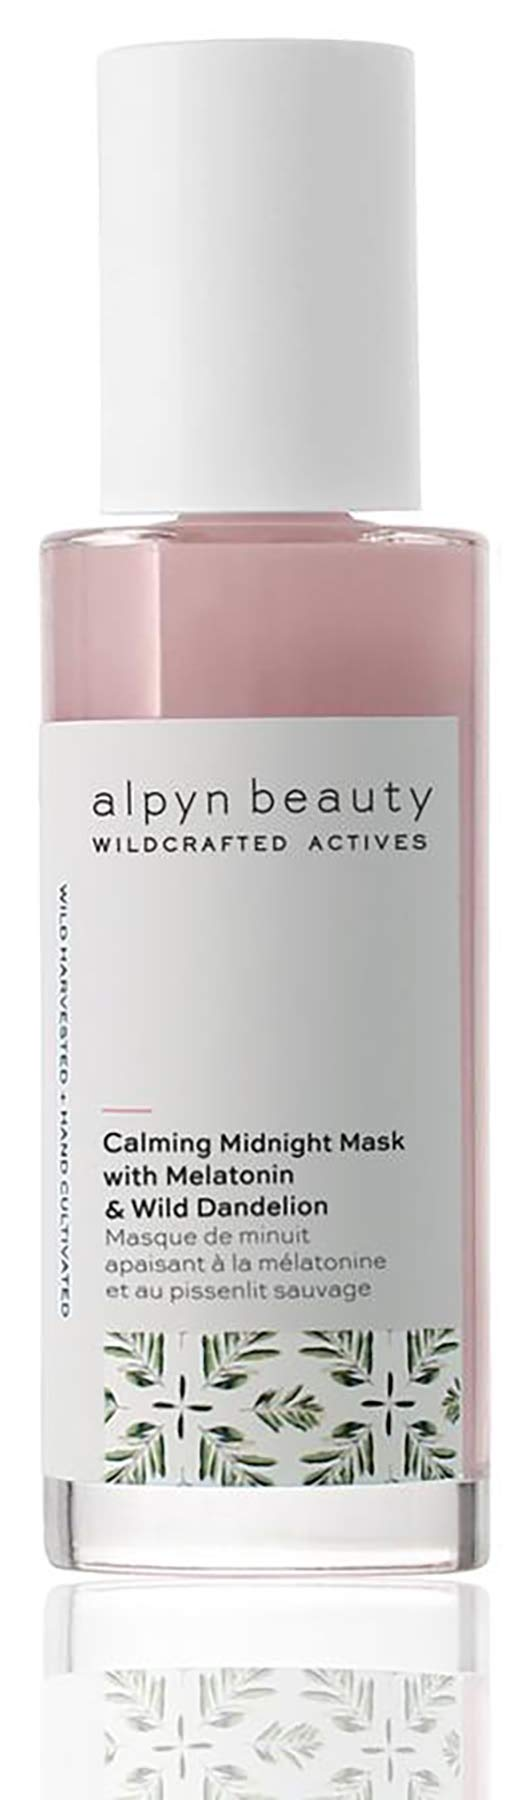 Alpyn Beauty - Natural Calming Midnight Mask With Melatonin & Wild Dandelion | Clean, Wildcrafted Luxury Skin Care